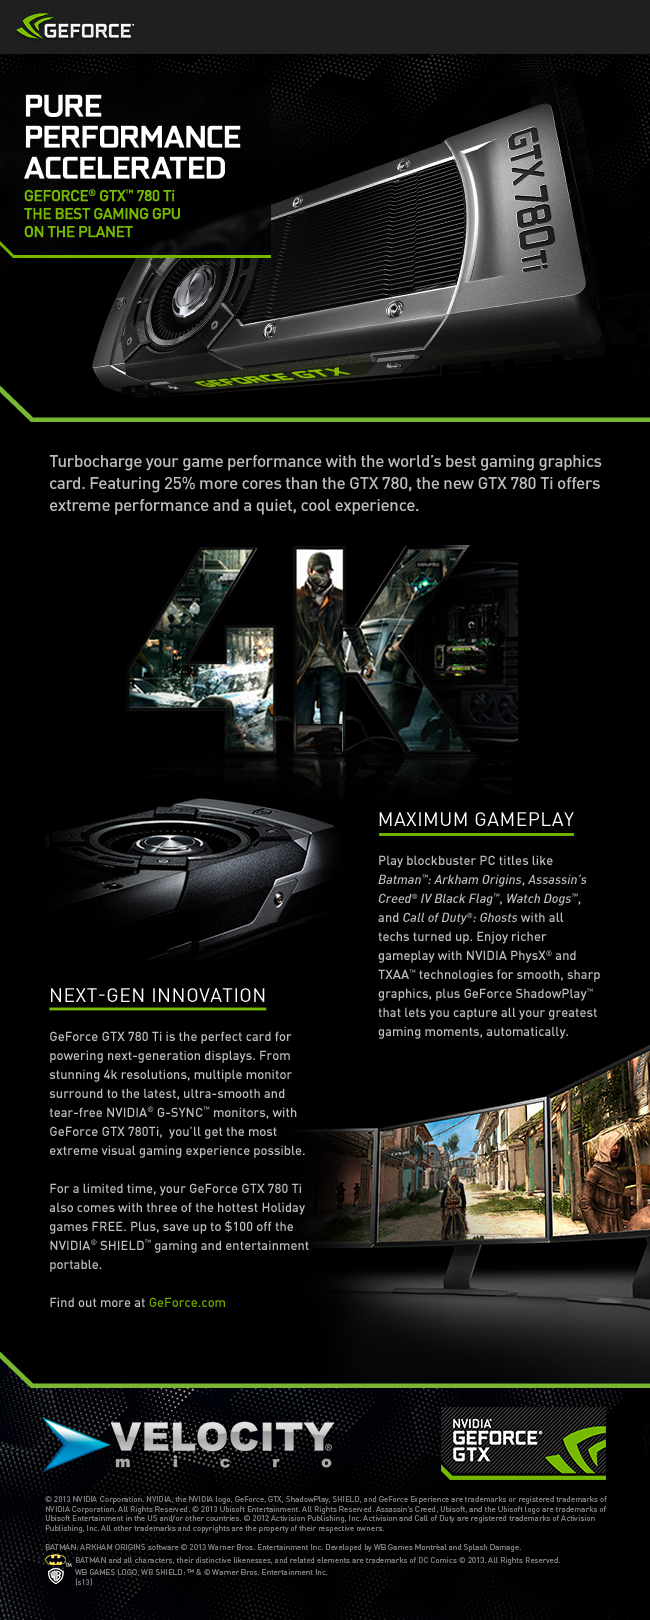 GeForce GTX 780 Ti Gaming Graphics Card